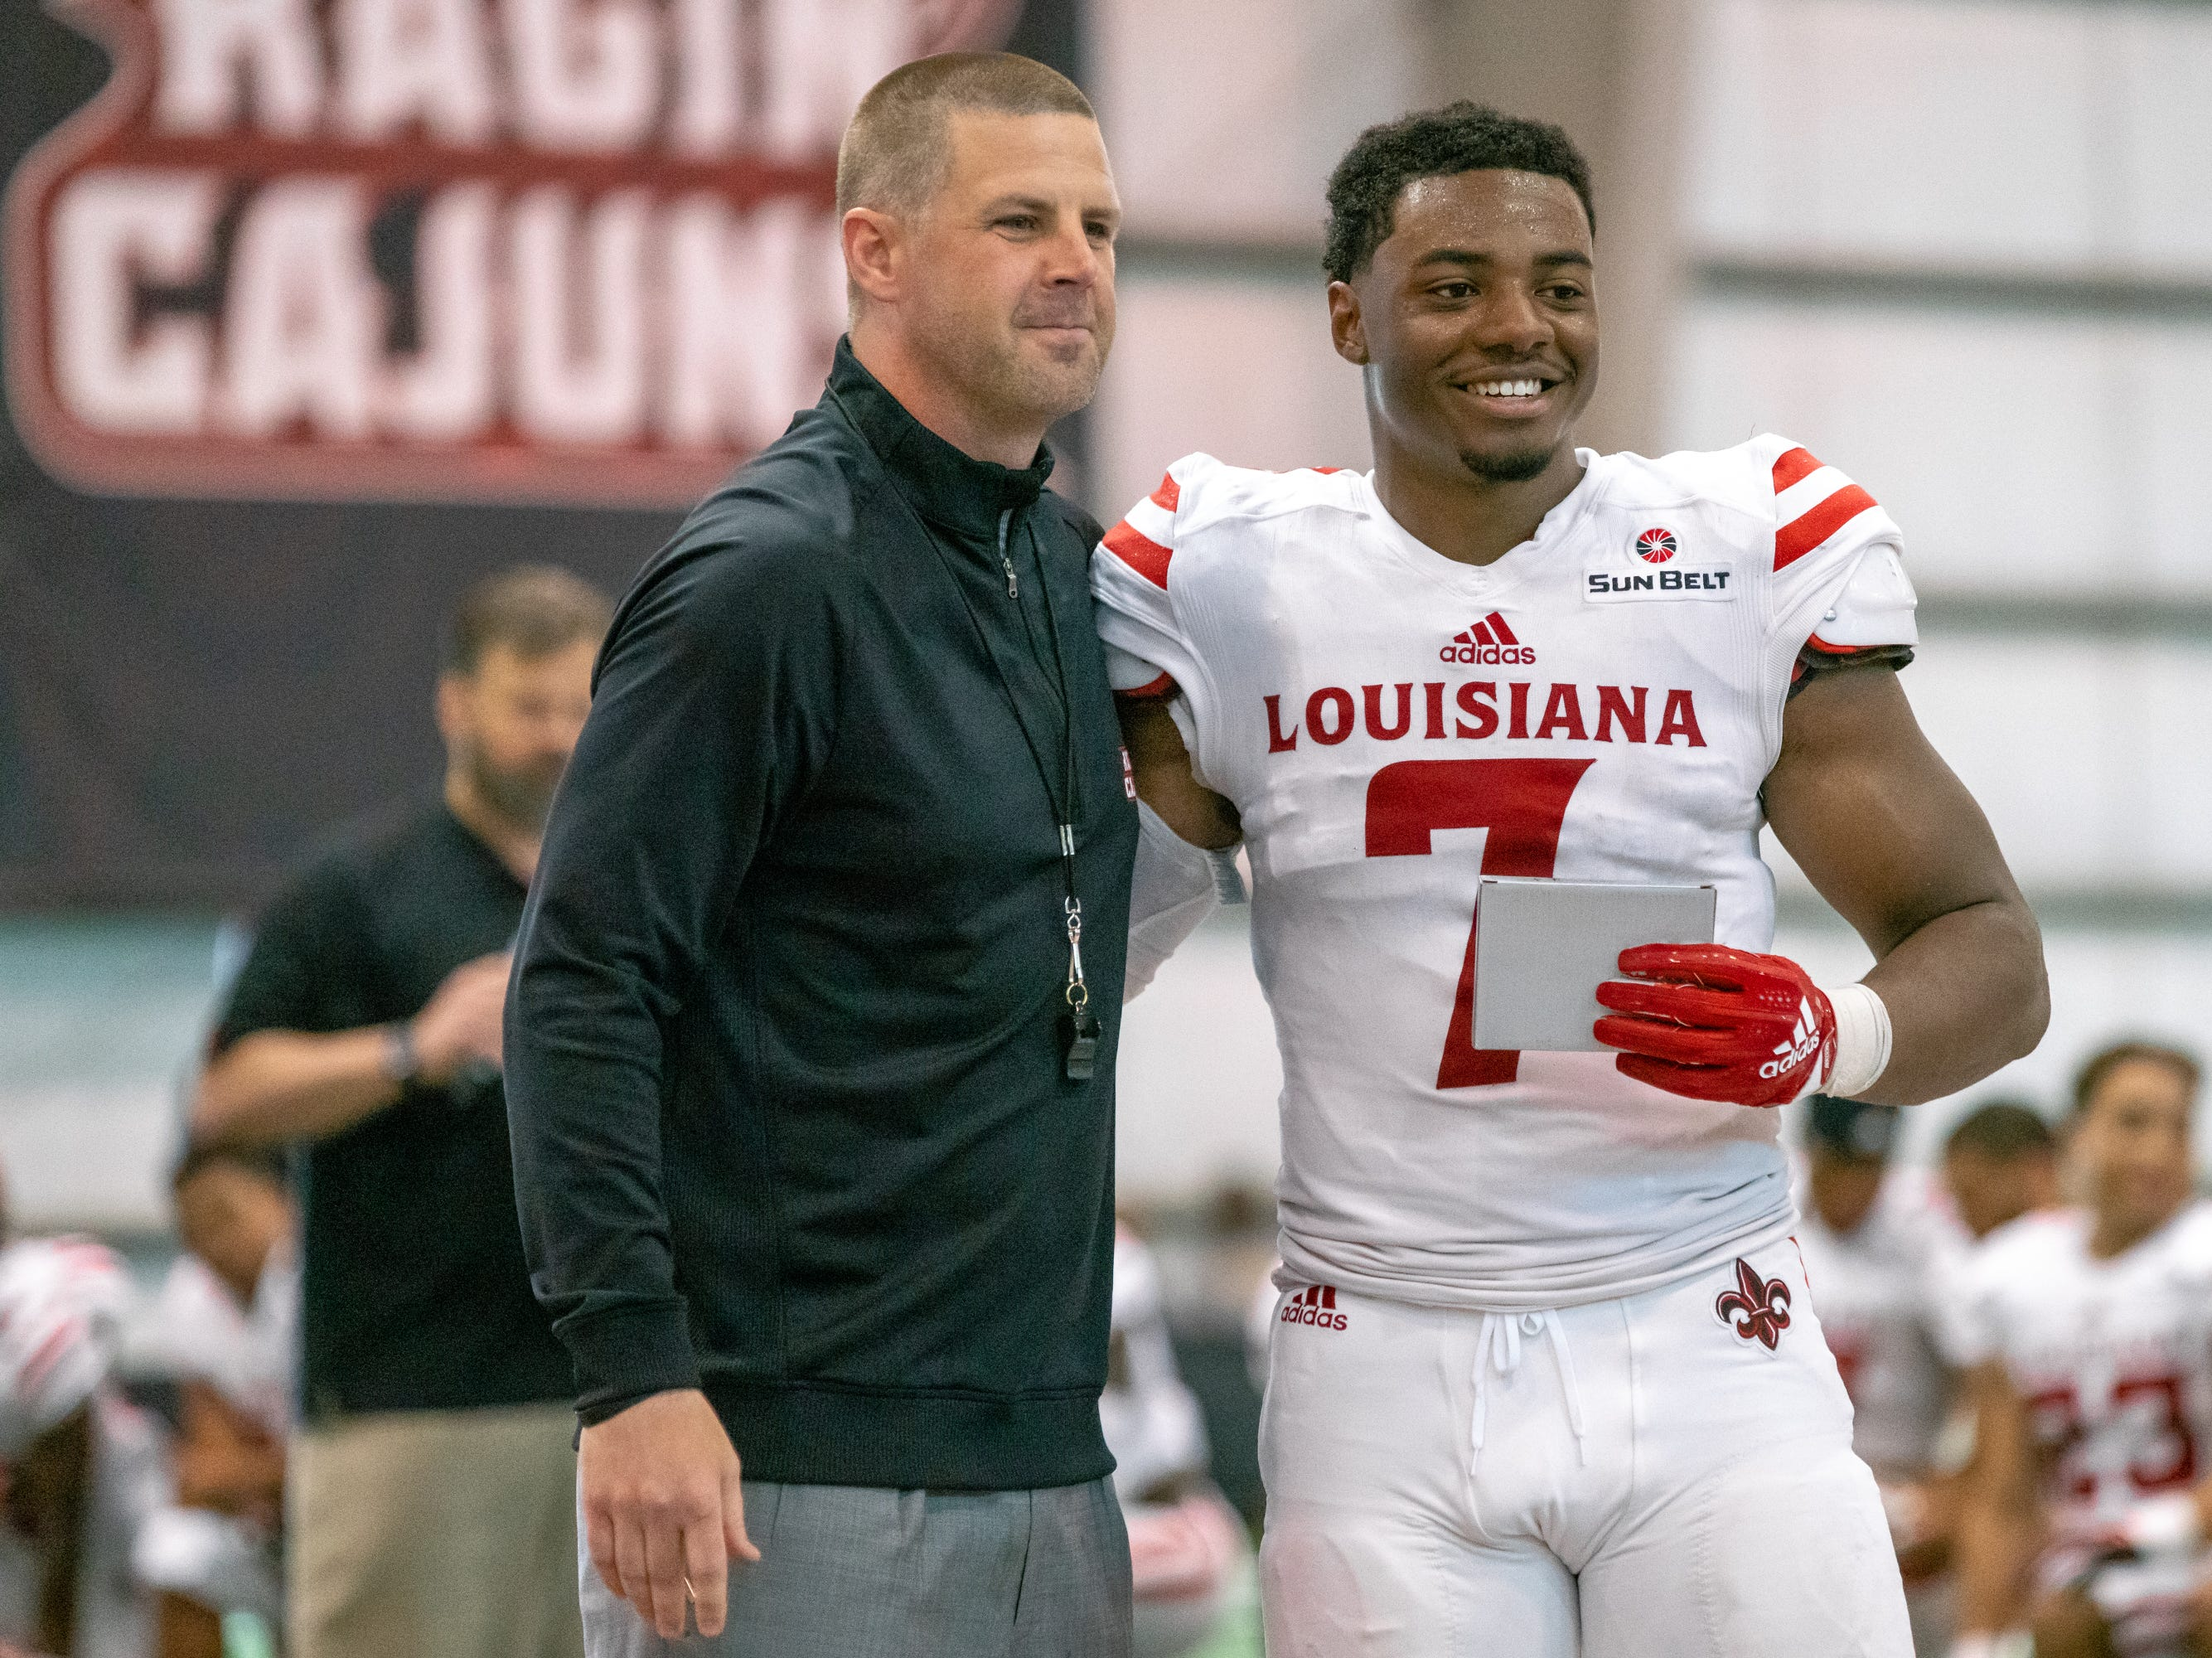 UL's Ferrod Gardner with head coach Billy Napier during halftime as the Ragin' Cajuns football team plays their annual Spring football game against one another in the Leon Moncla trainig facility on April 13, 2019.